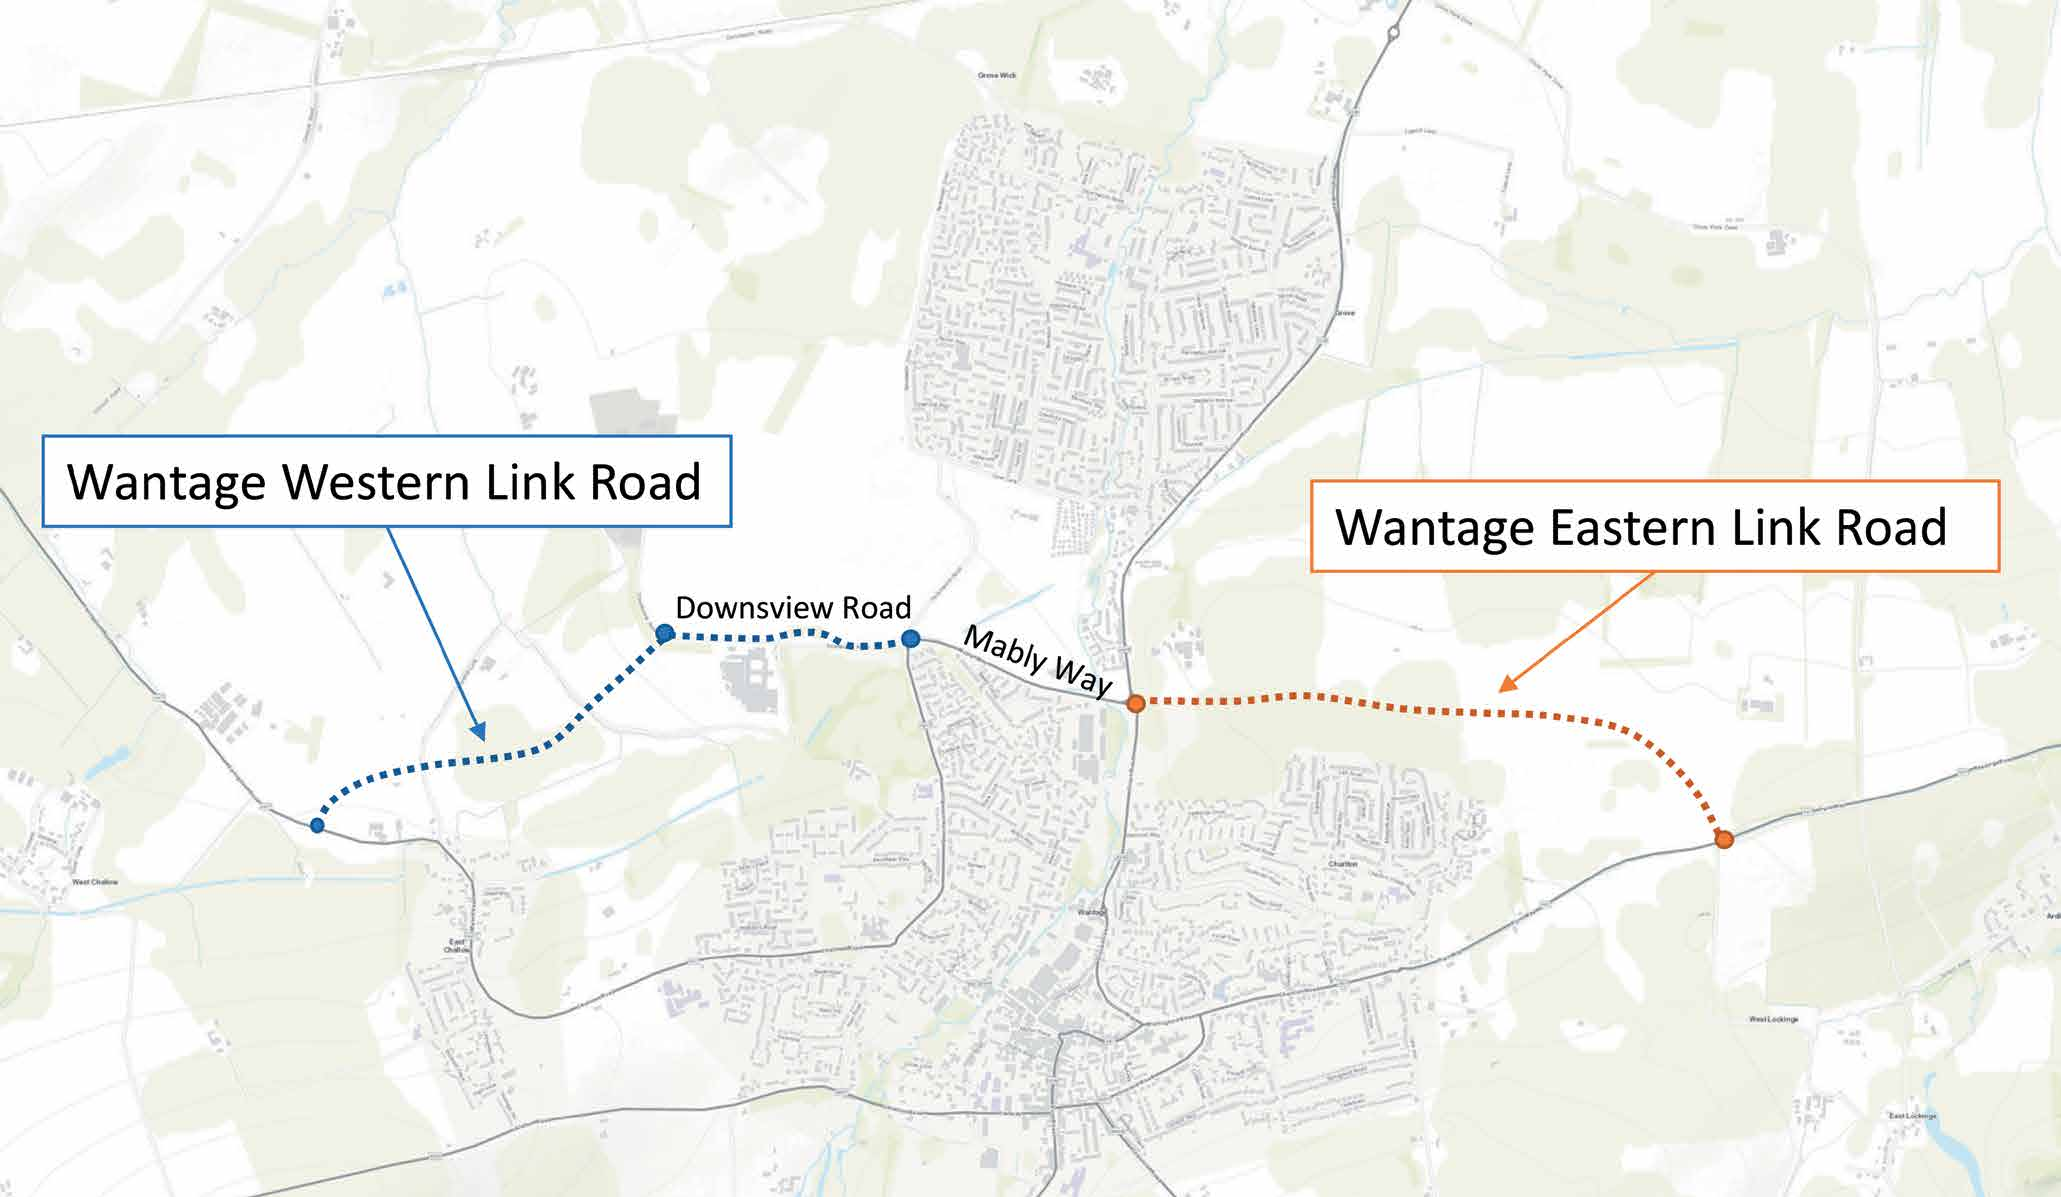 northern-pass-for-wantage